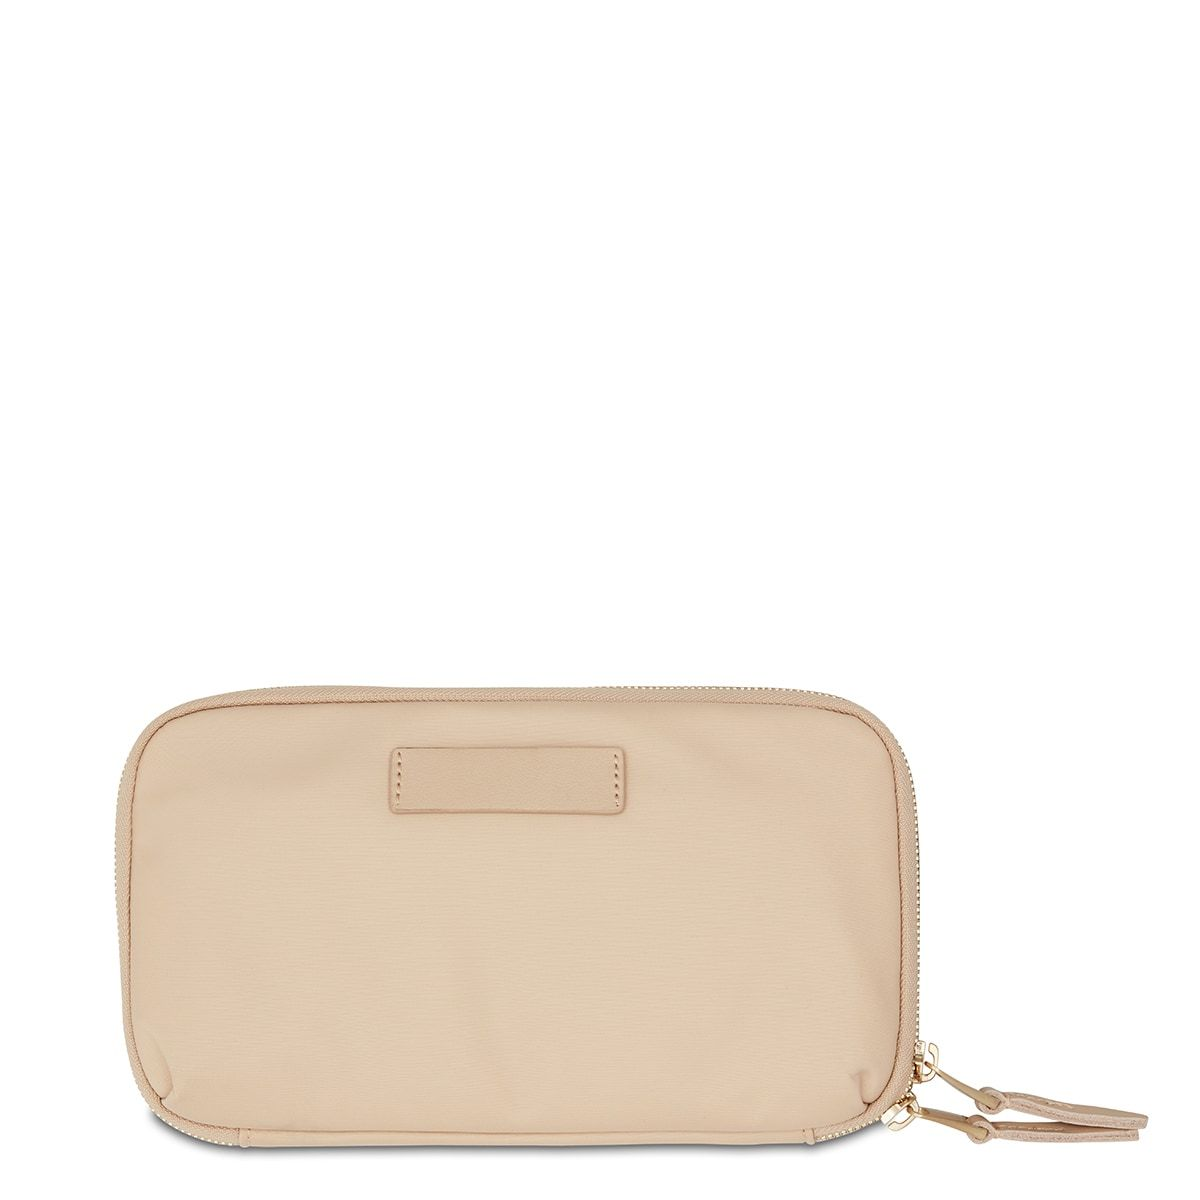 "KNOMO Knomad Travel Wallet Travel Organiser From Back 8"" -  Trench Beige 